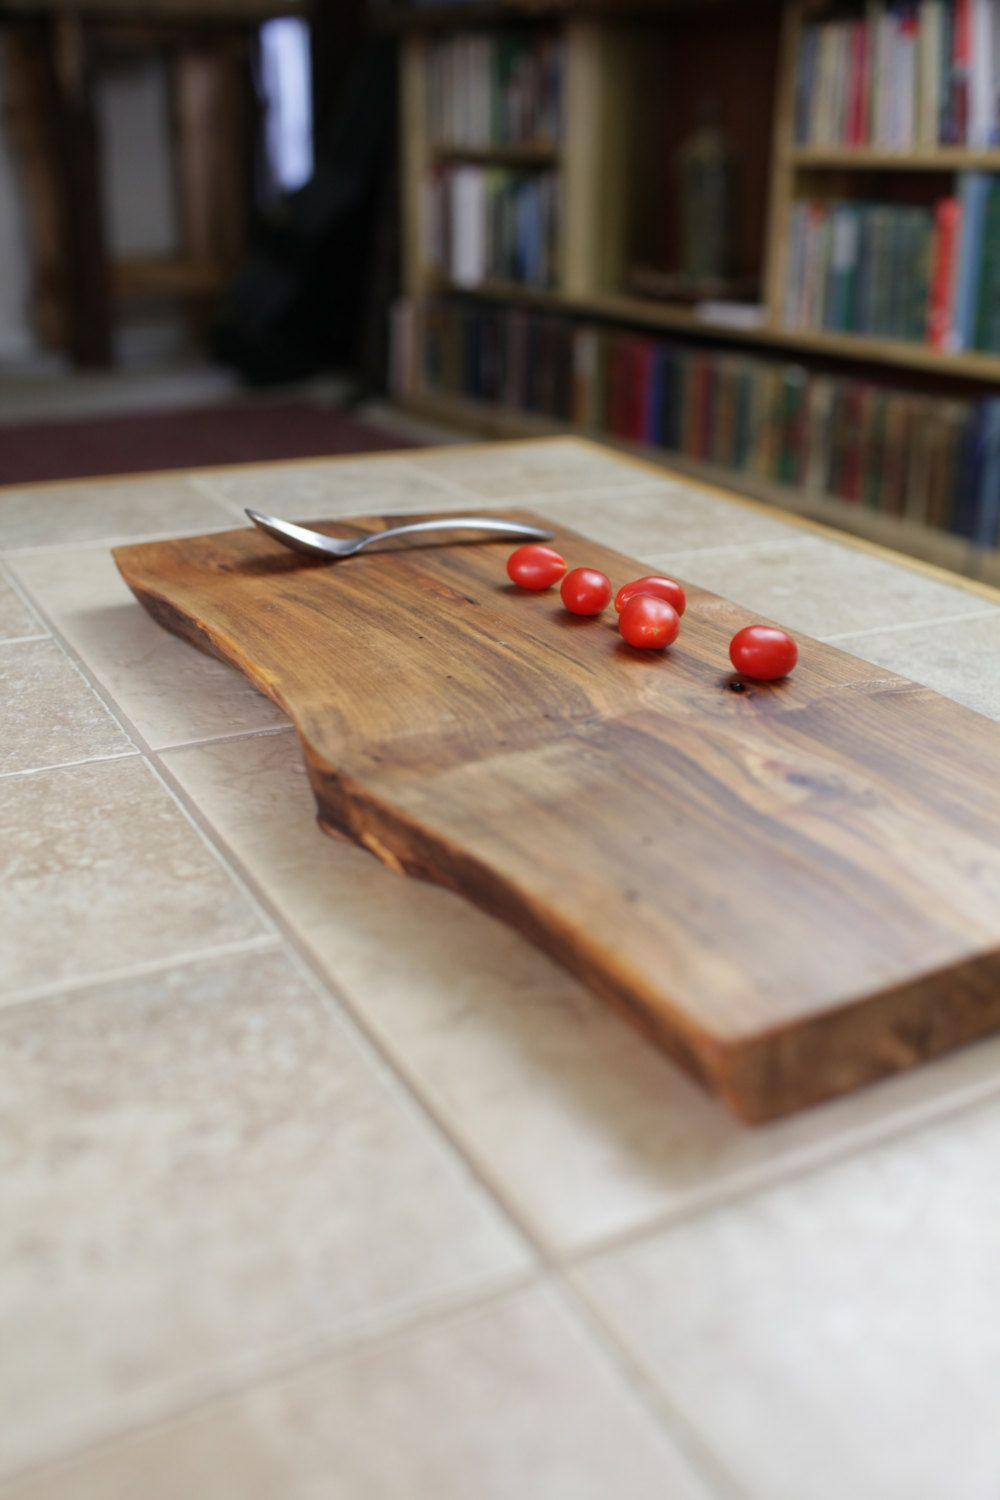 Make your cheese plate simply stunning diy wood slice cutting board - Wood Cutting Boards Serving Tray Wood Slab Server Rustic Cheese Platter